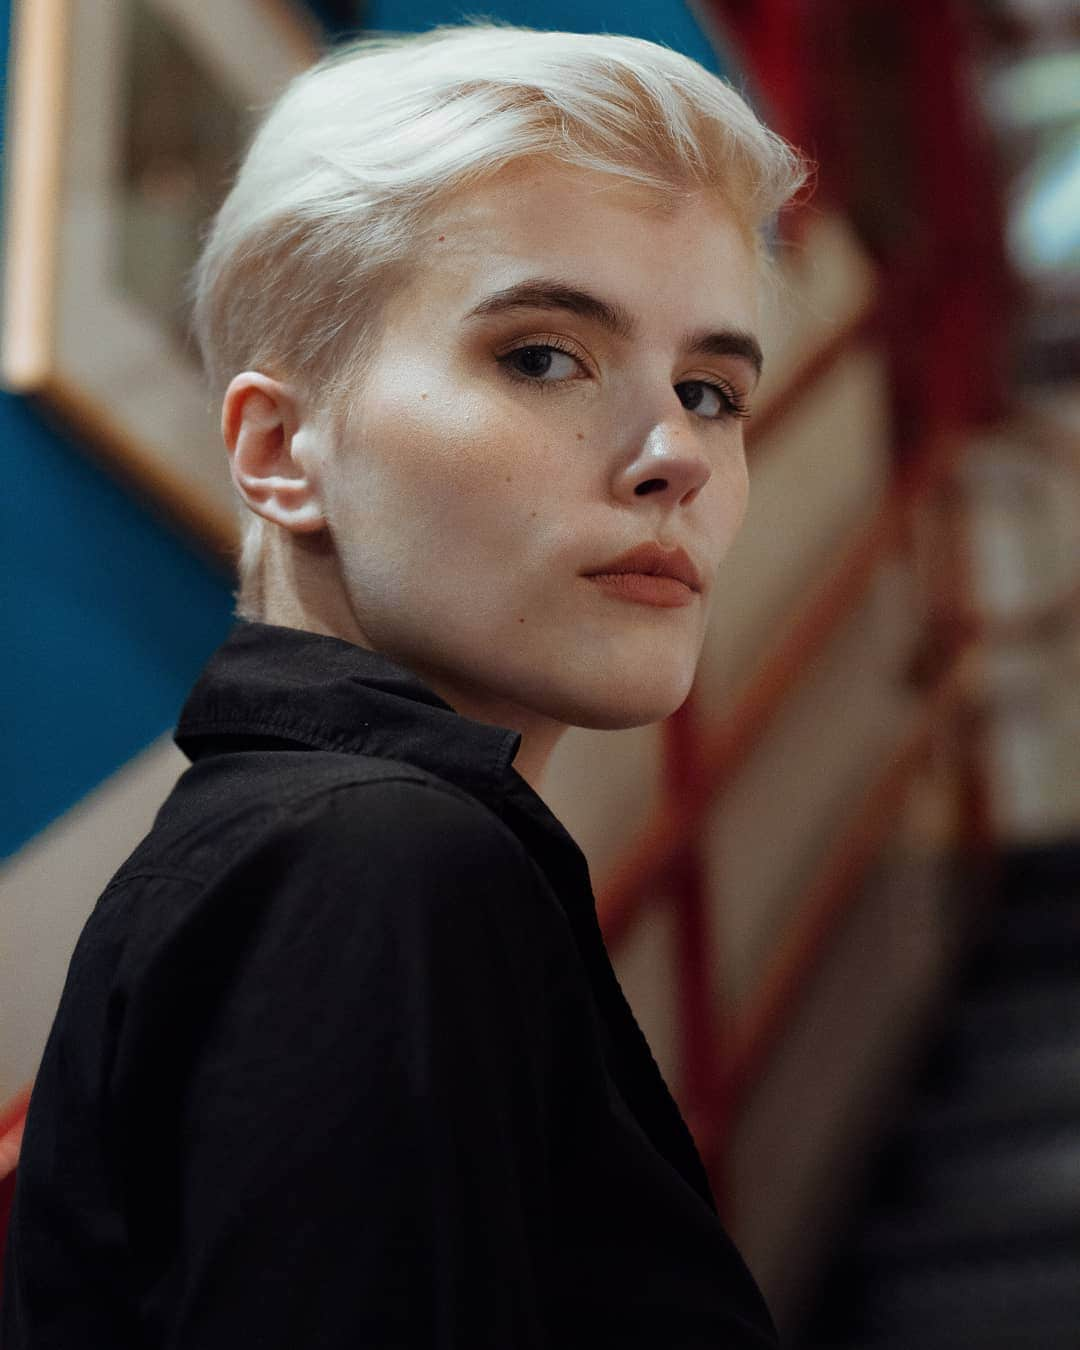 woman with blonde pixie haircut